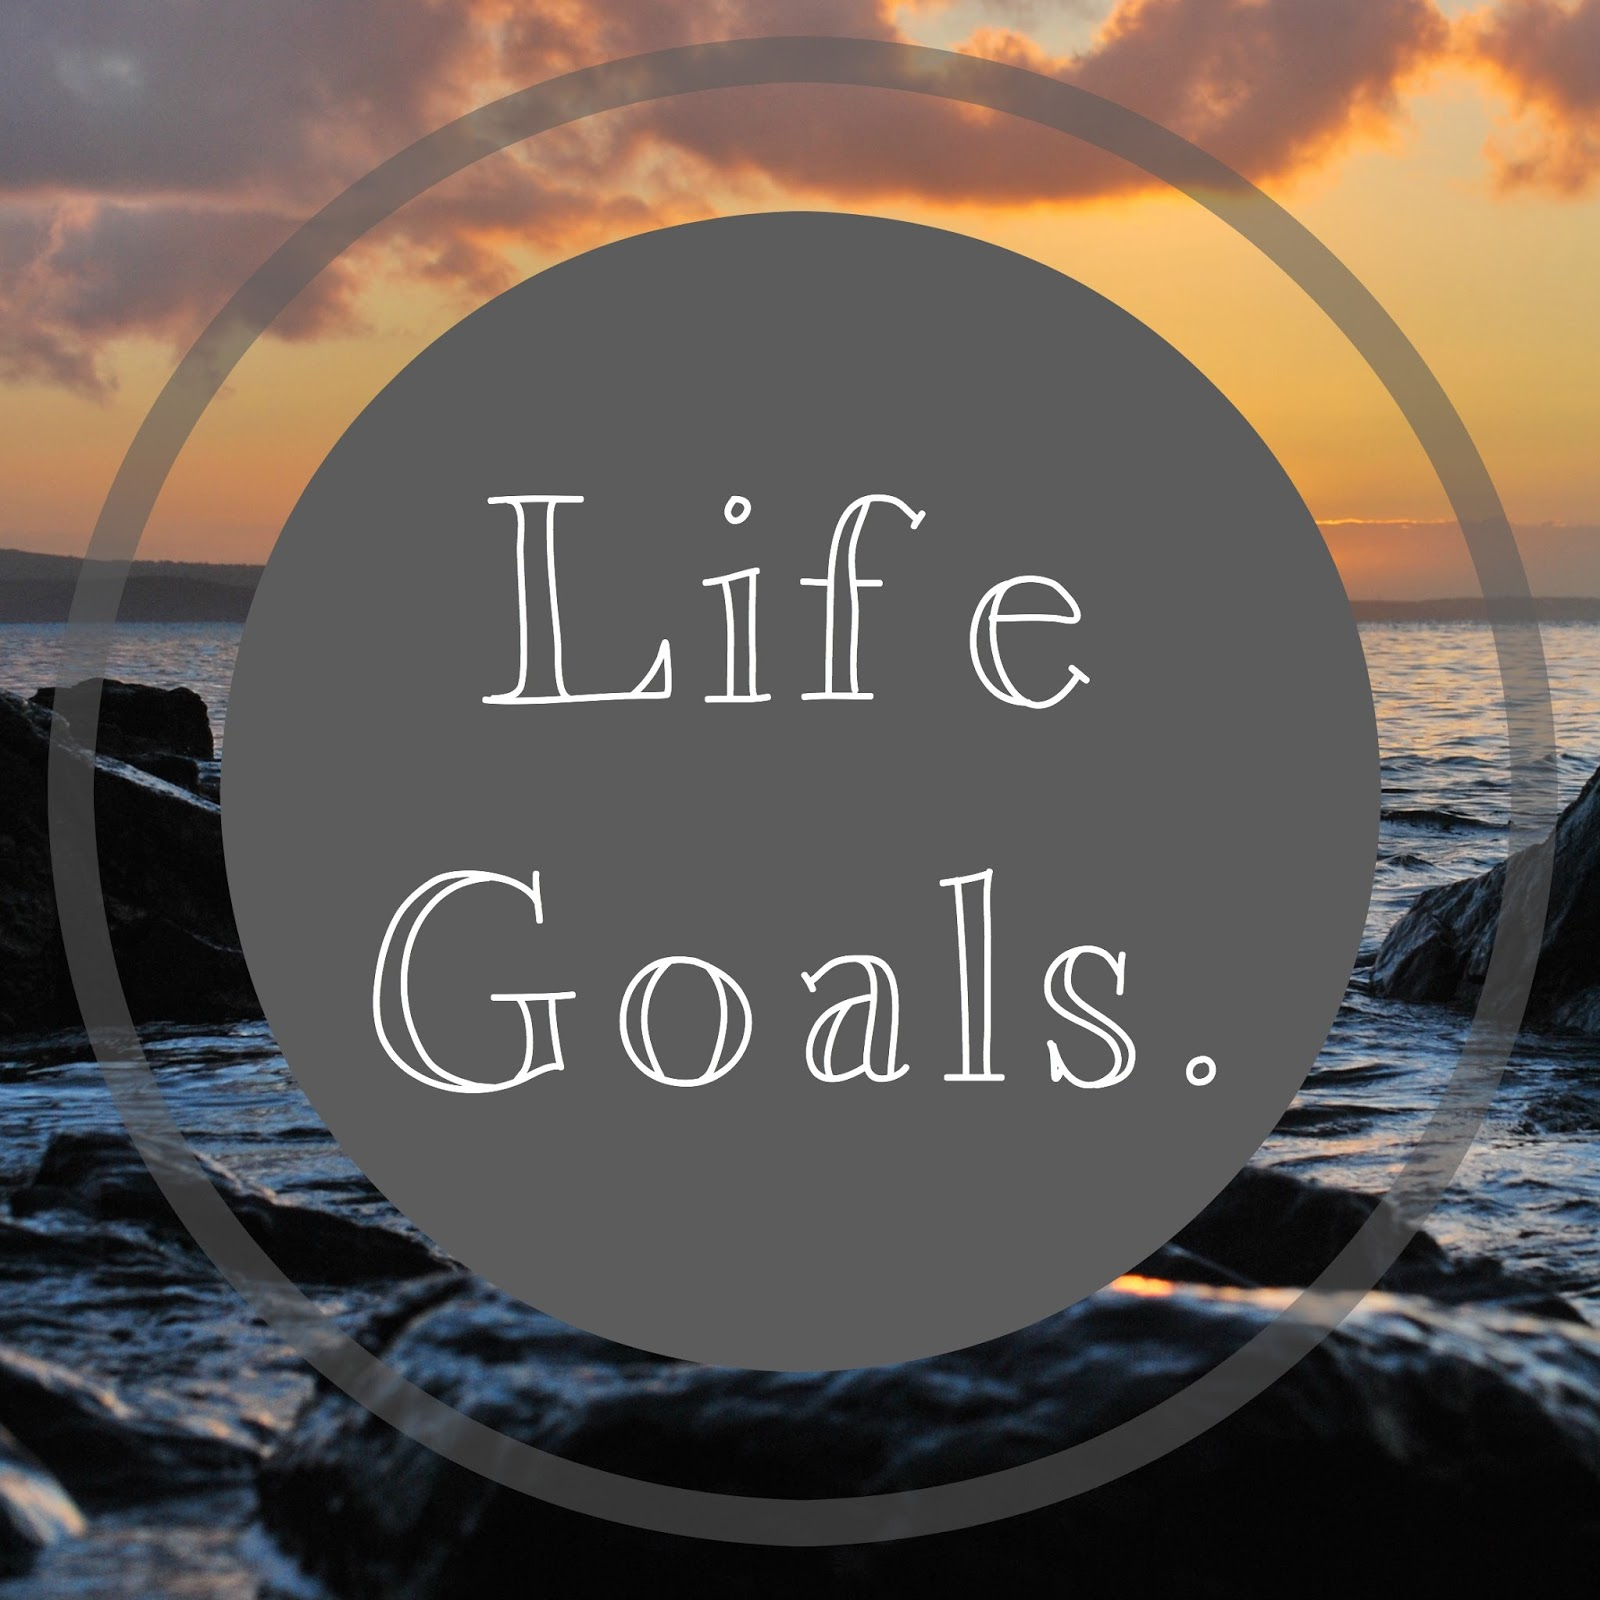 Essay about goals and dreams in life